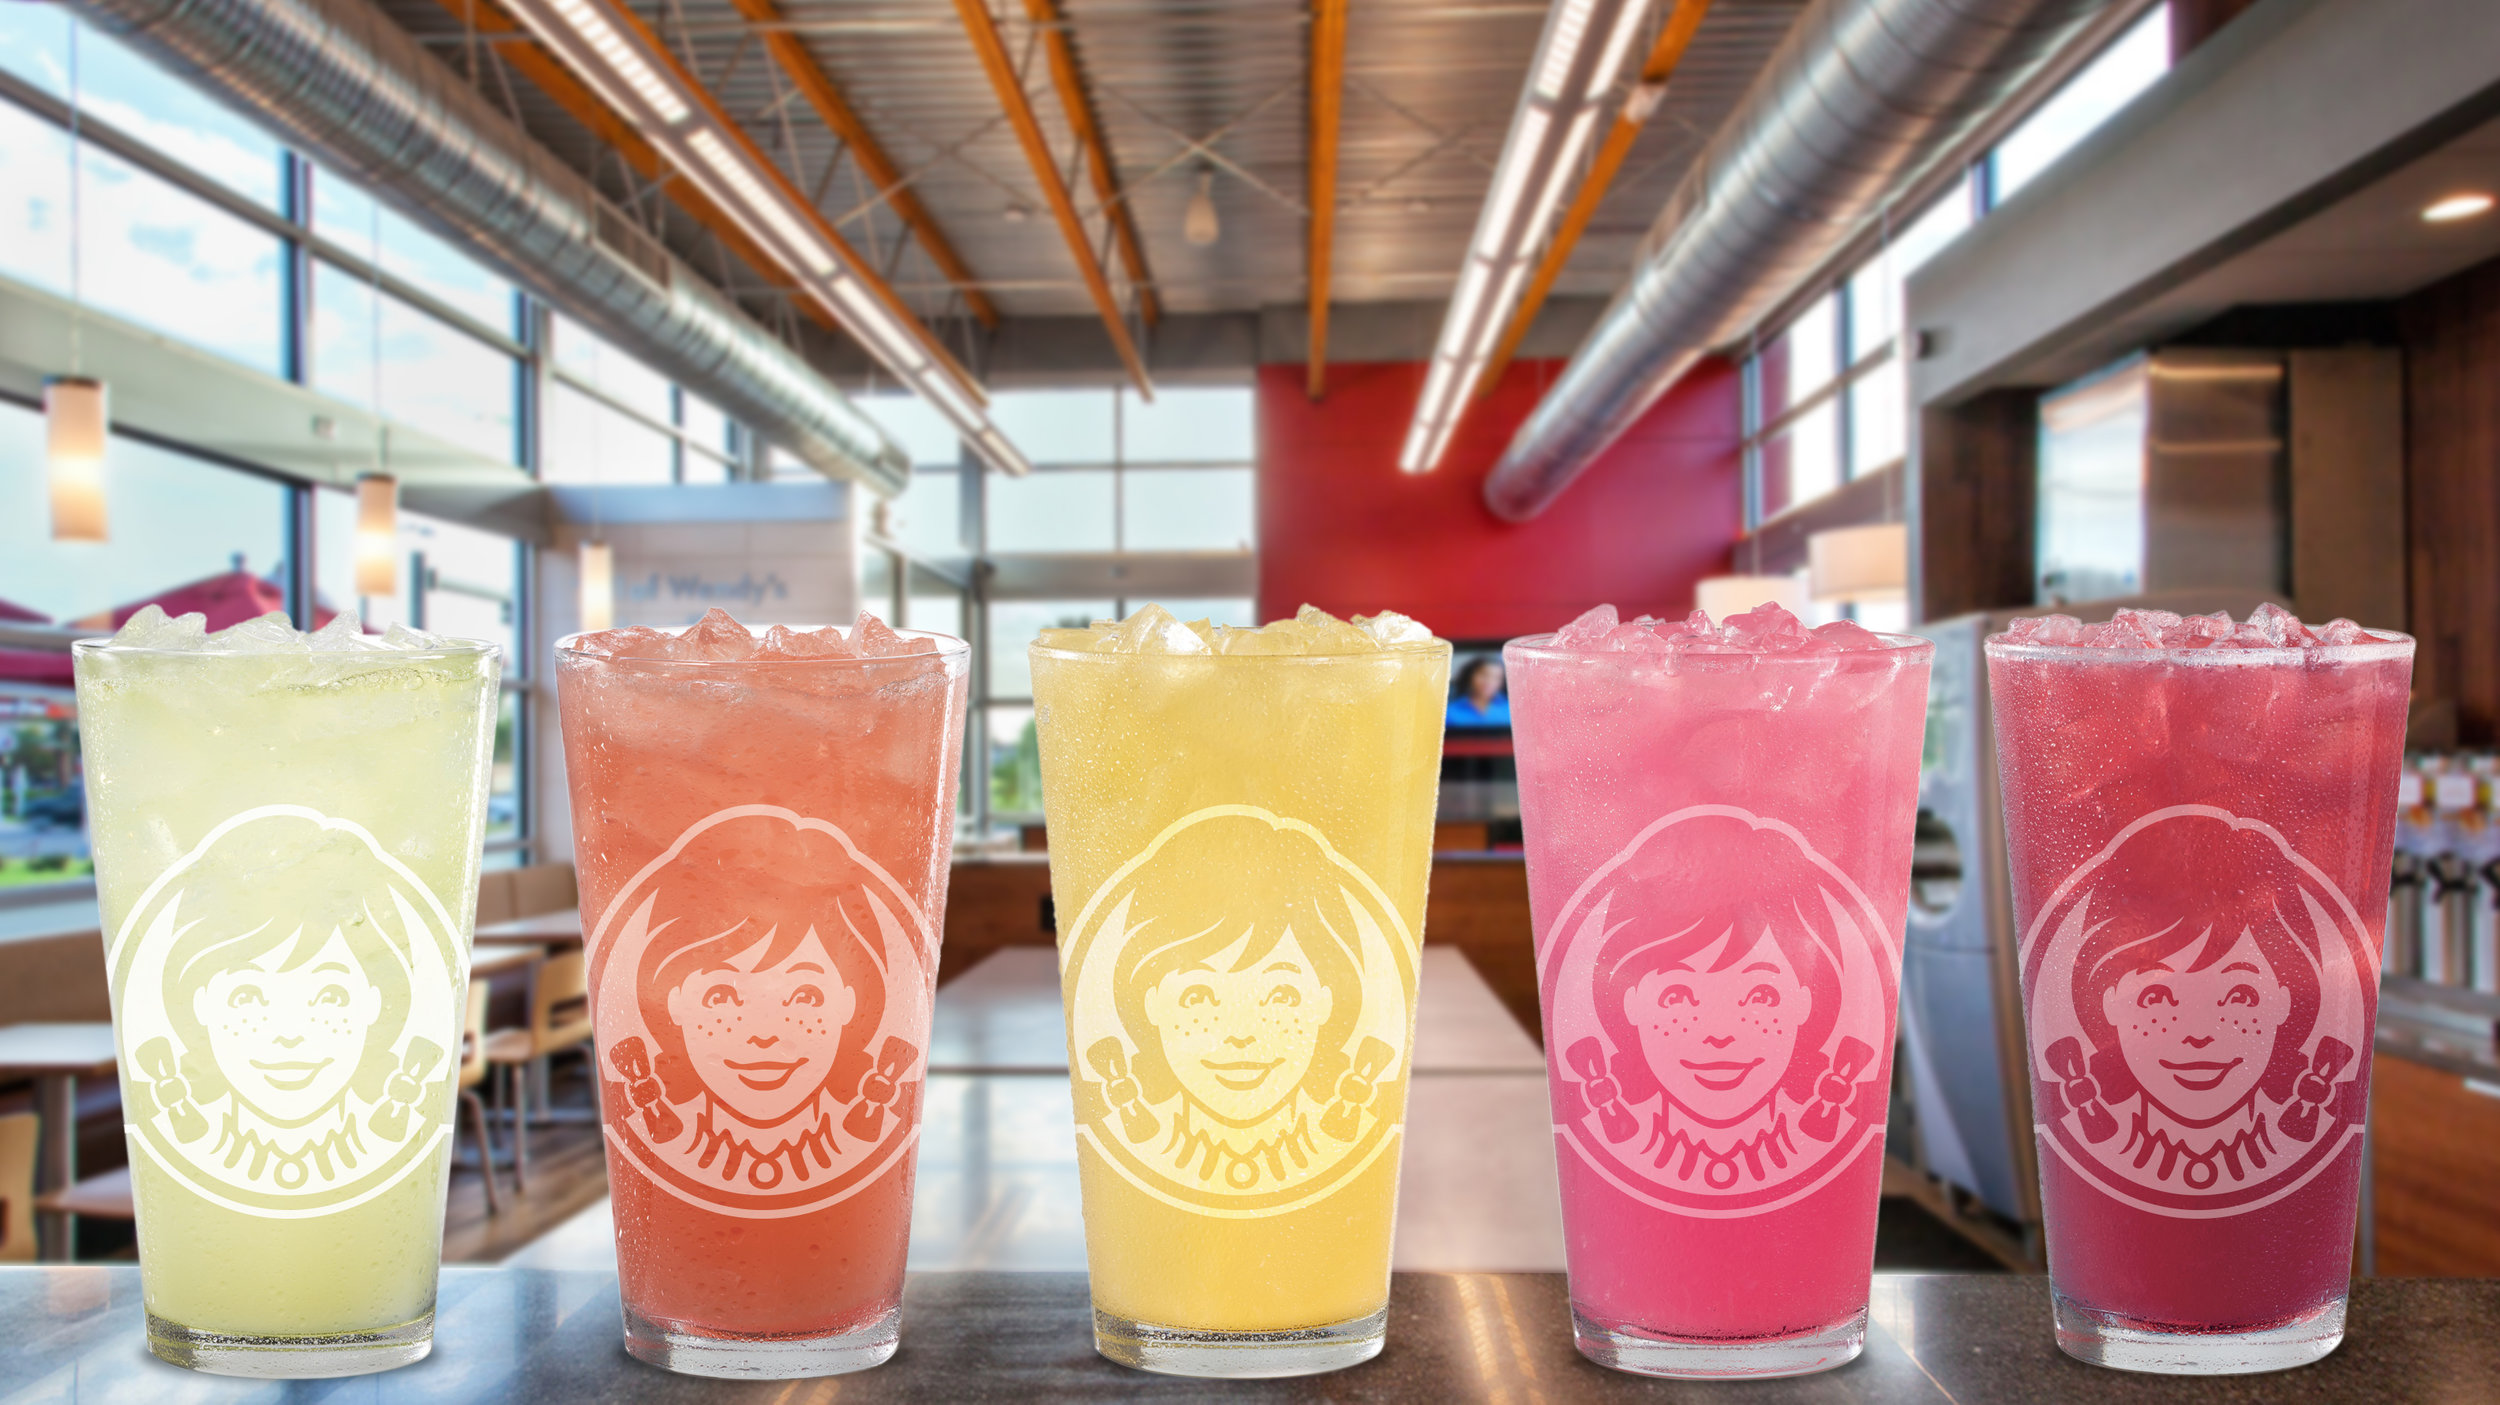 From classic Lemonade to the fan favorite Strawberry Lemonade, Wendy's has a flavor this summer no matter your preference.